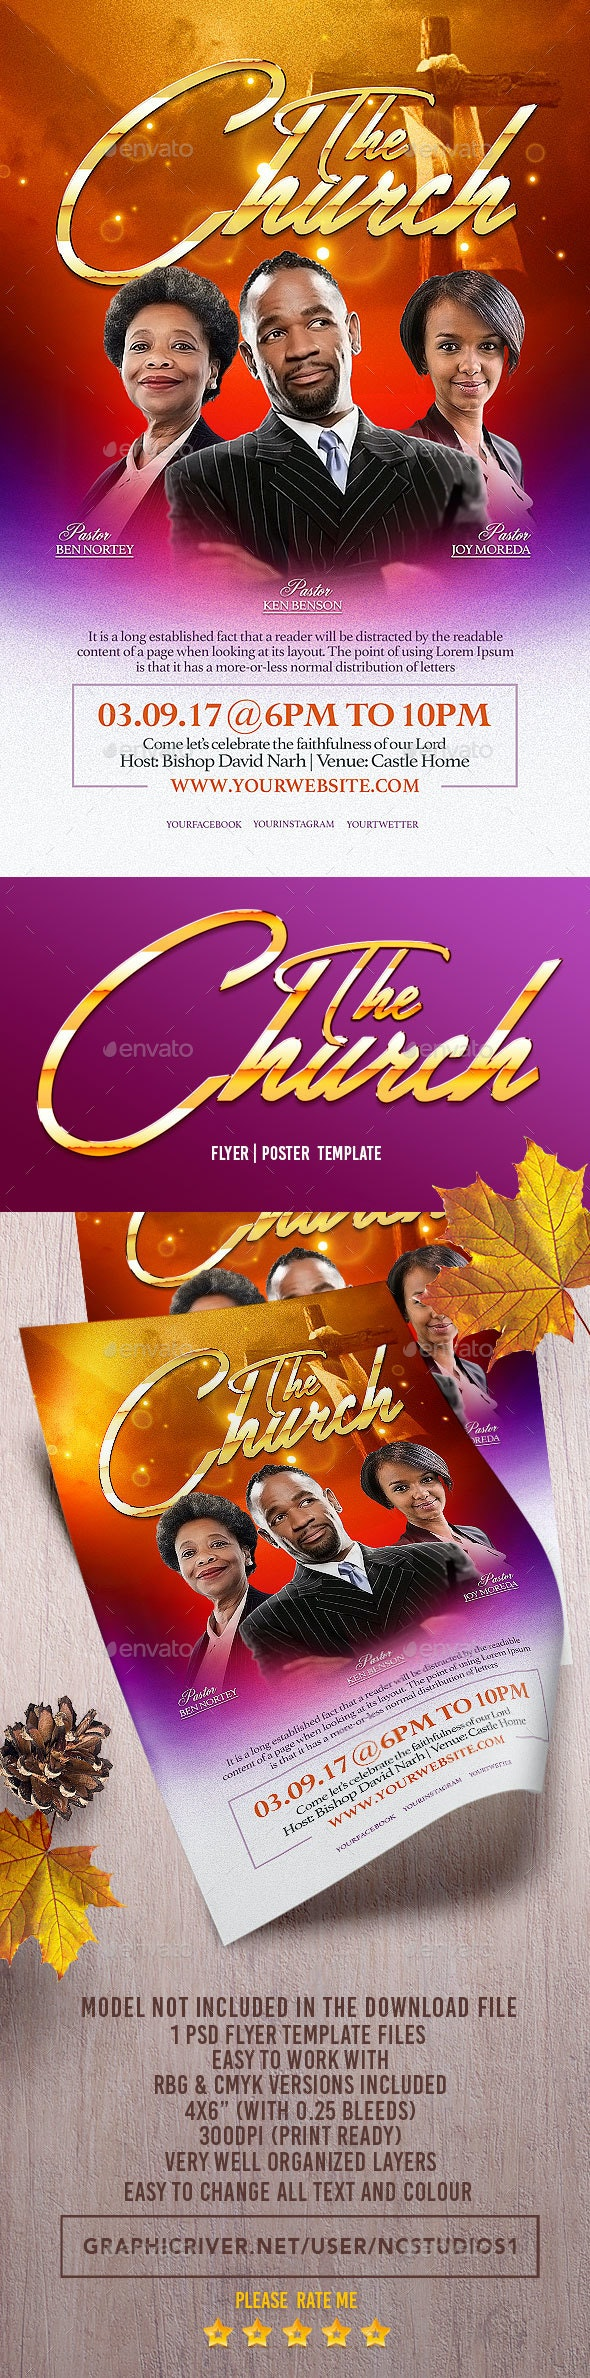 The Church Flyer Template - Flyers Print Templates